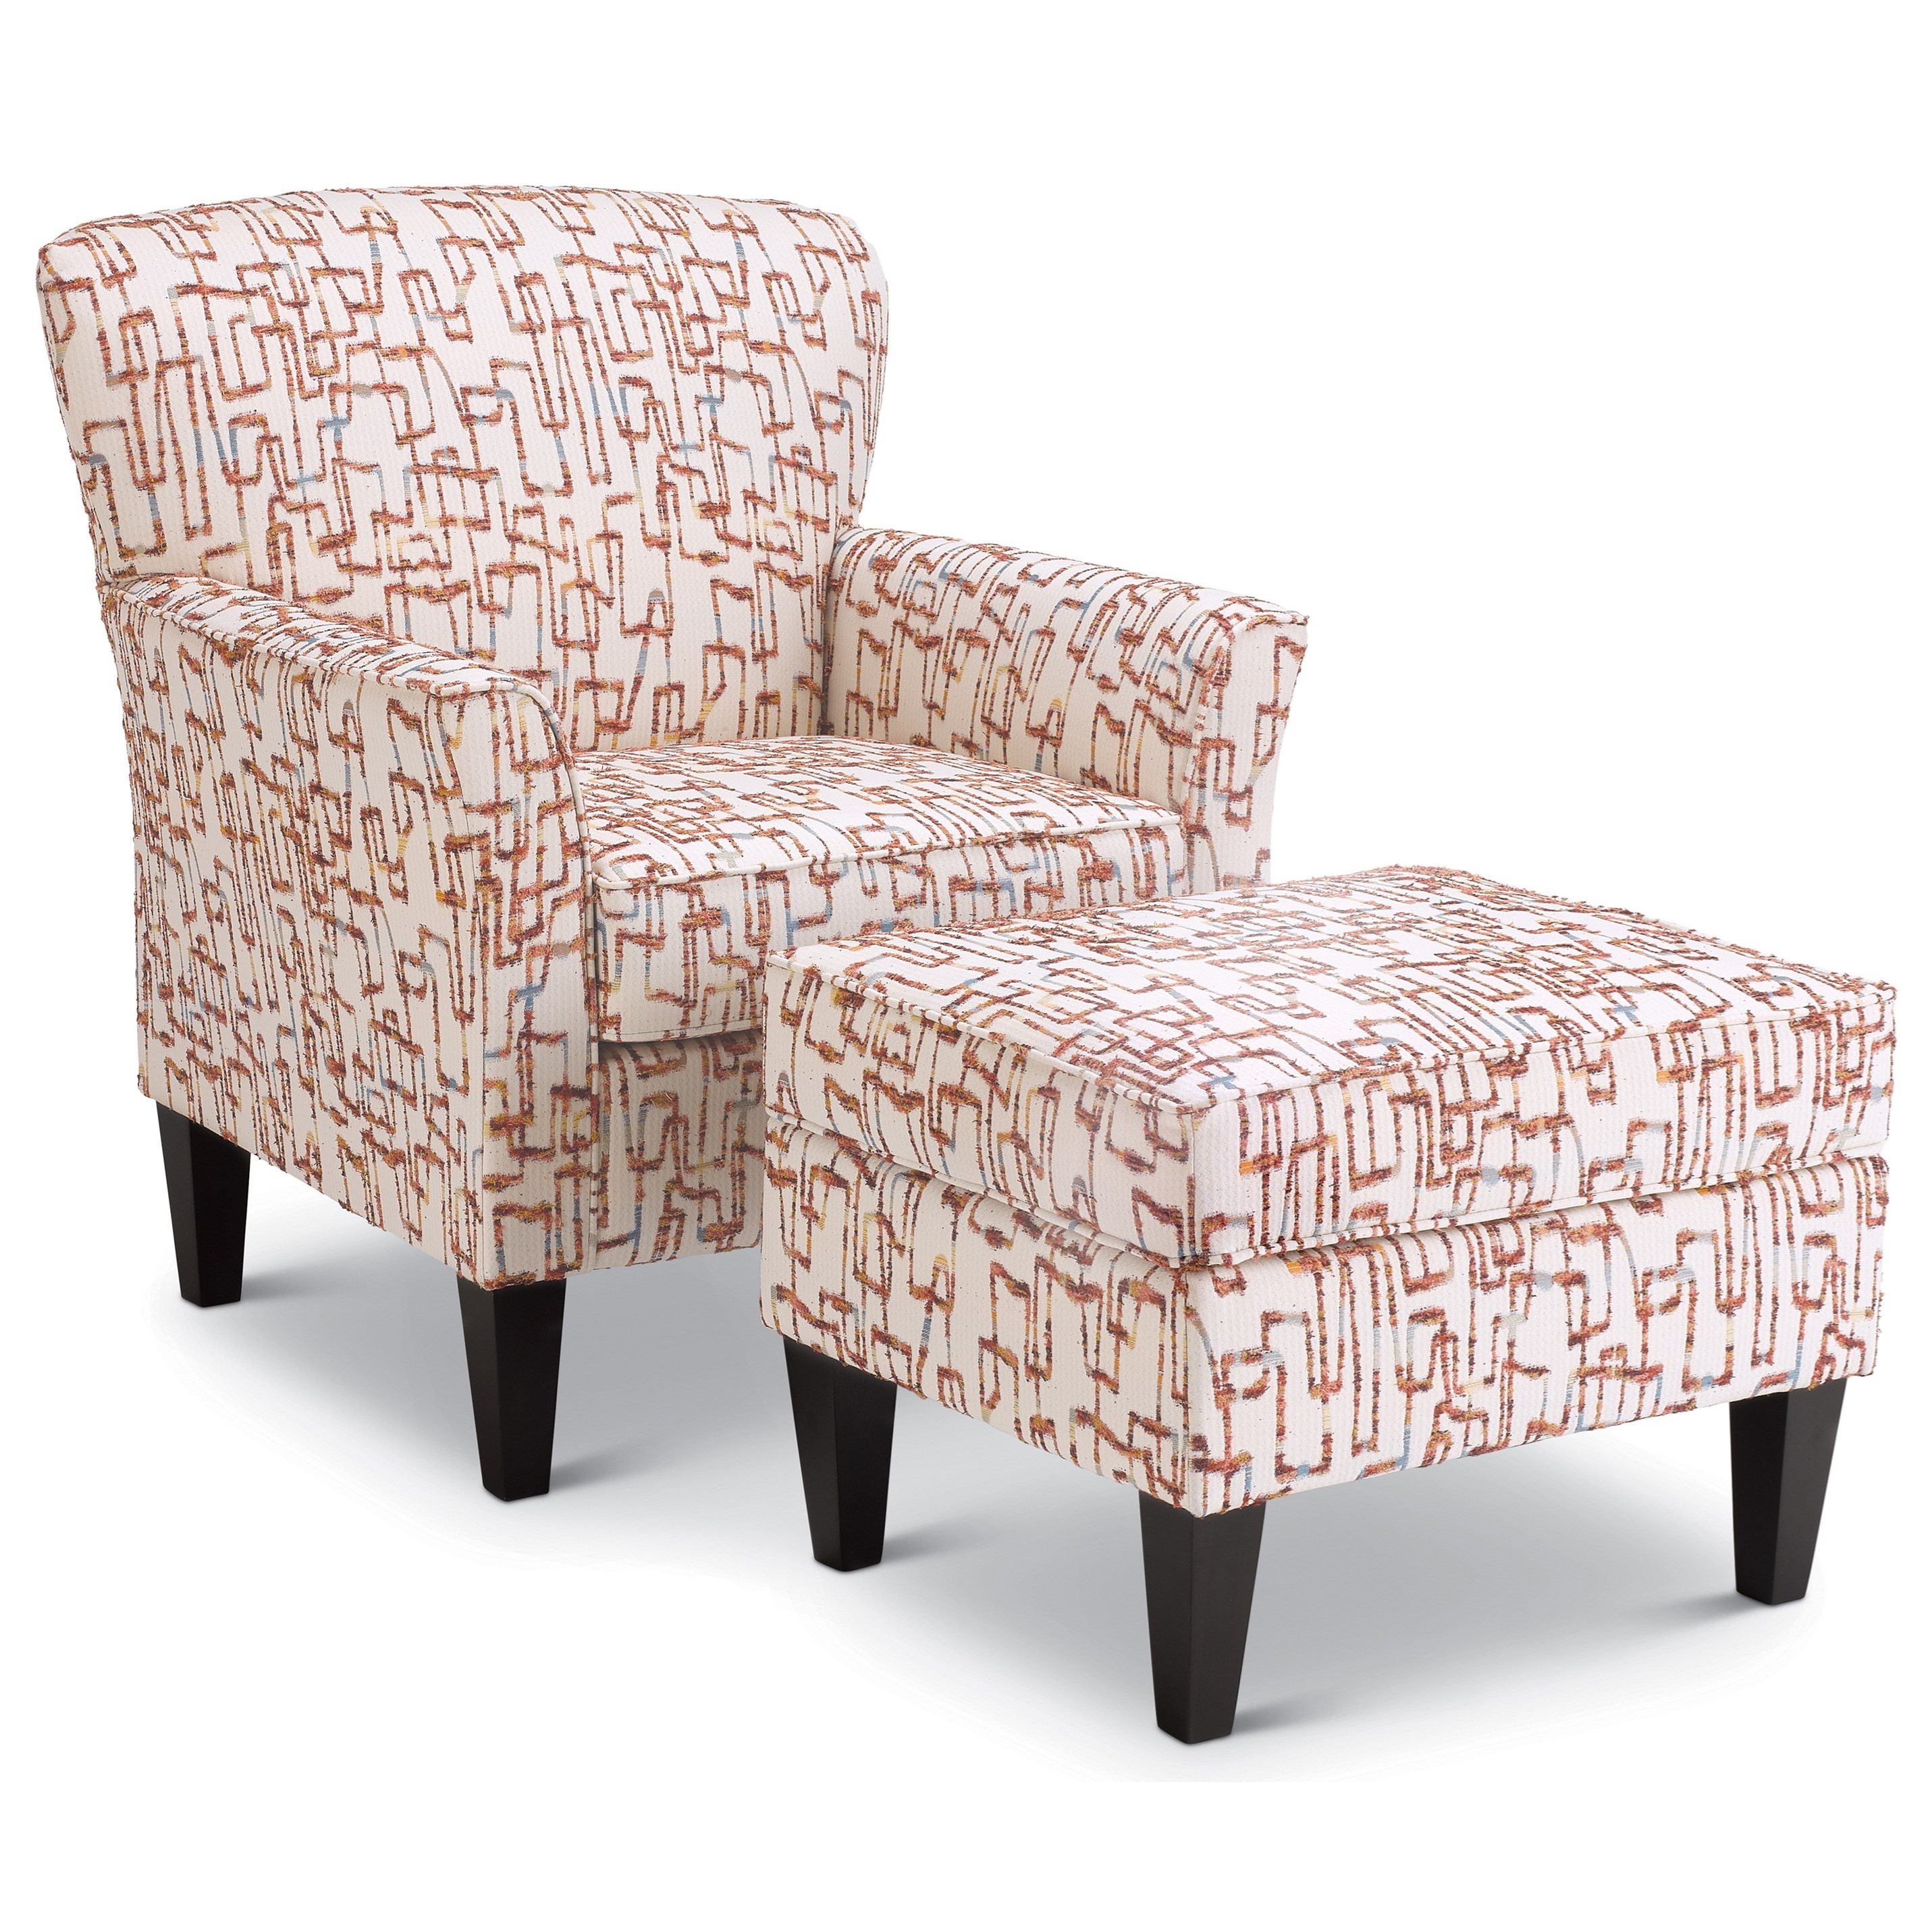 Saydie Chair & Ottoman Set by Best Home Furnishings at Baer's Furniture